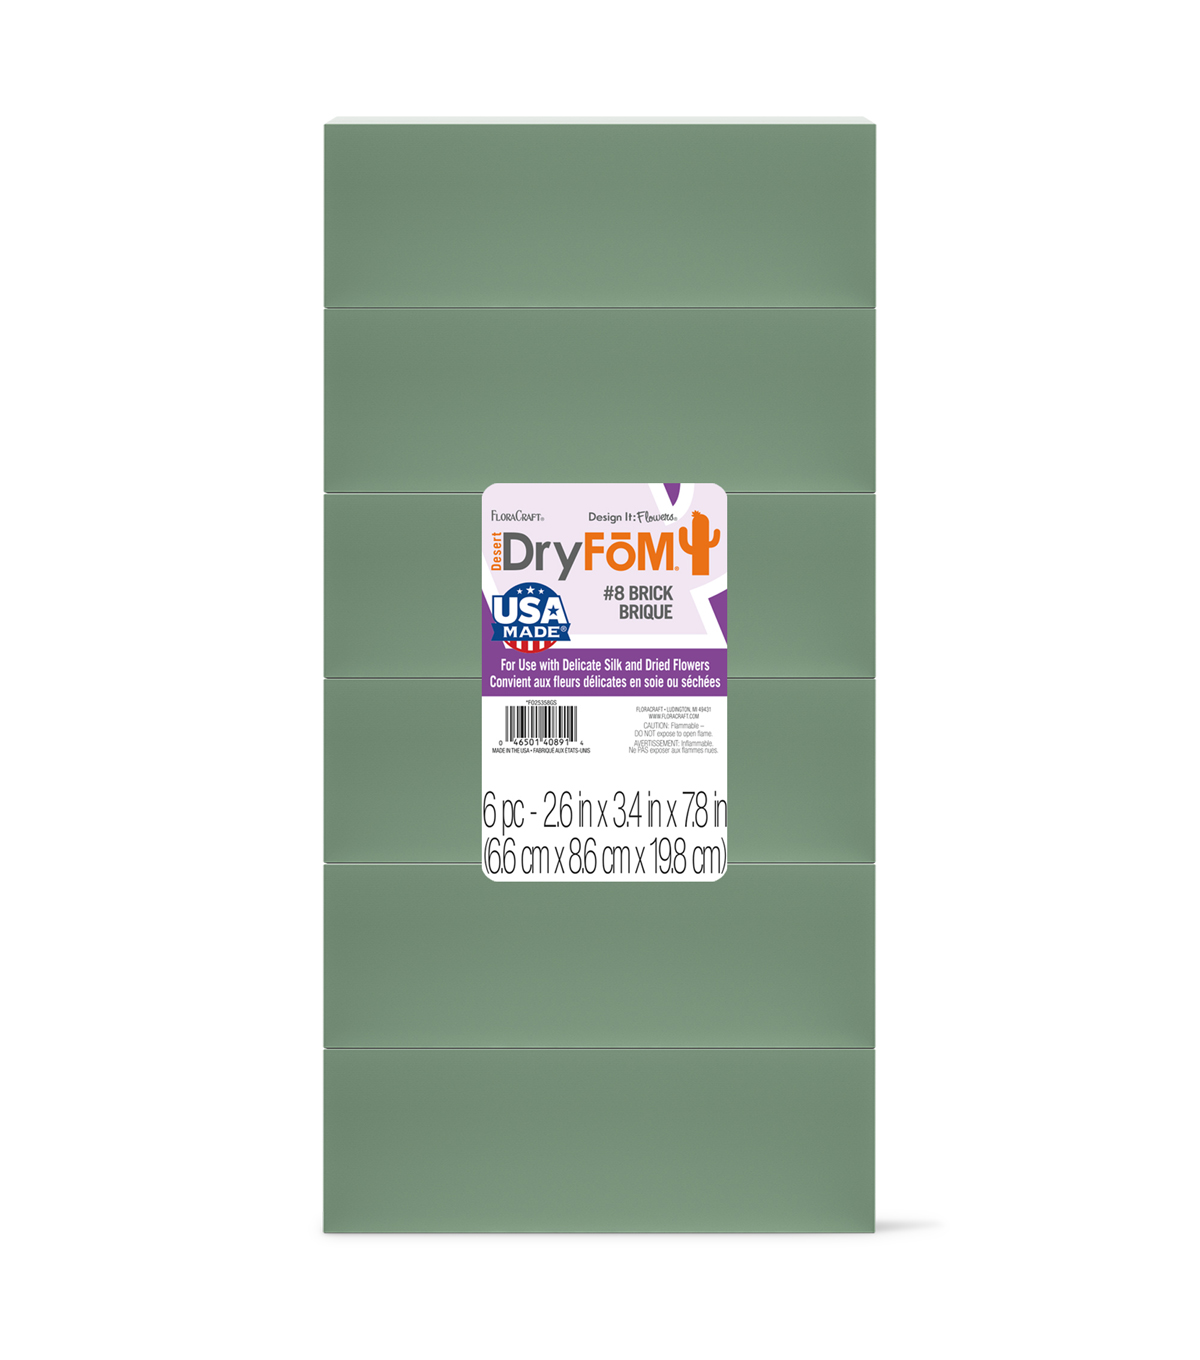 Floracraft 2-5/8\u0022x3-1/2\u0022x7-7/8\u0022 Floral Foam Blocks-6PK/Green